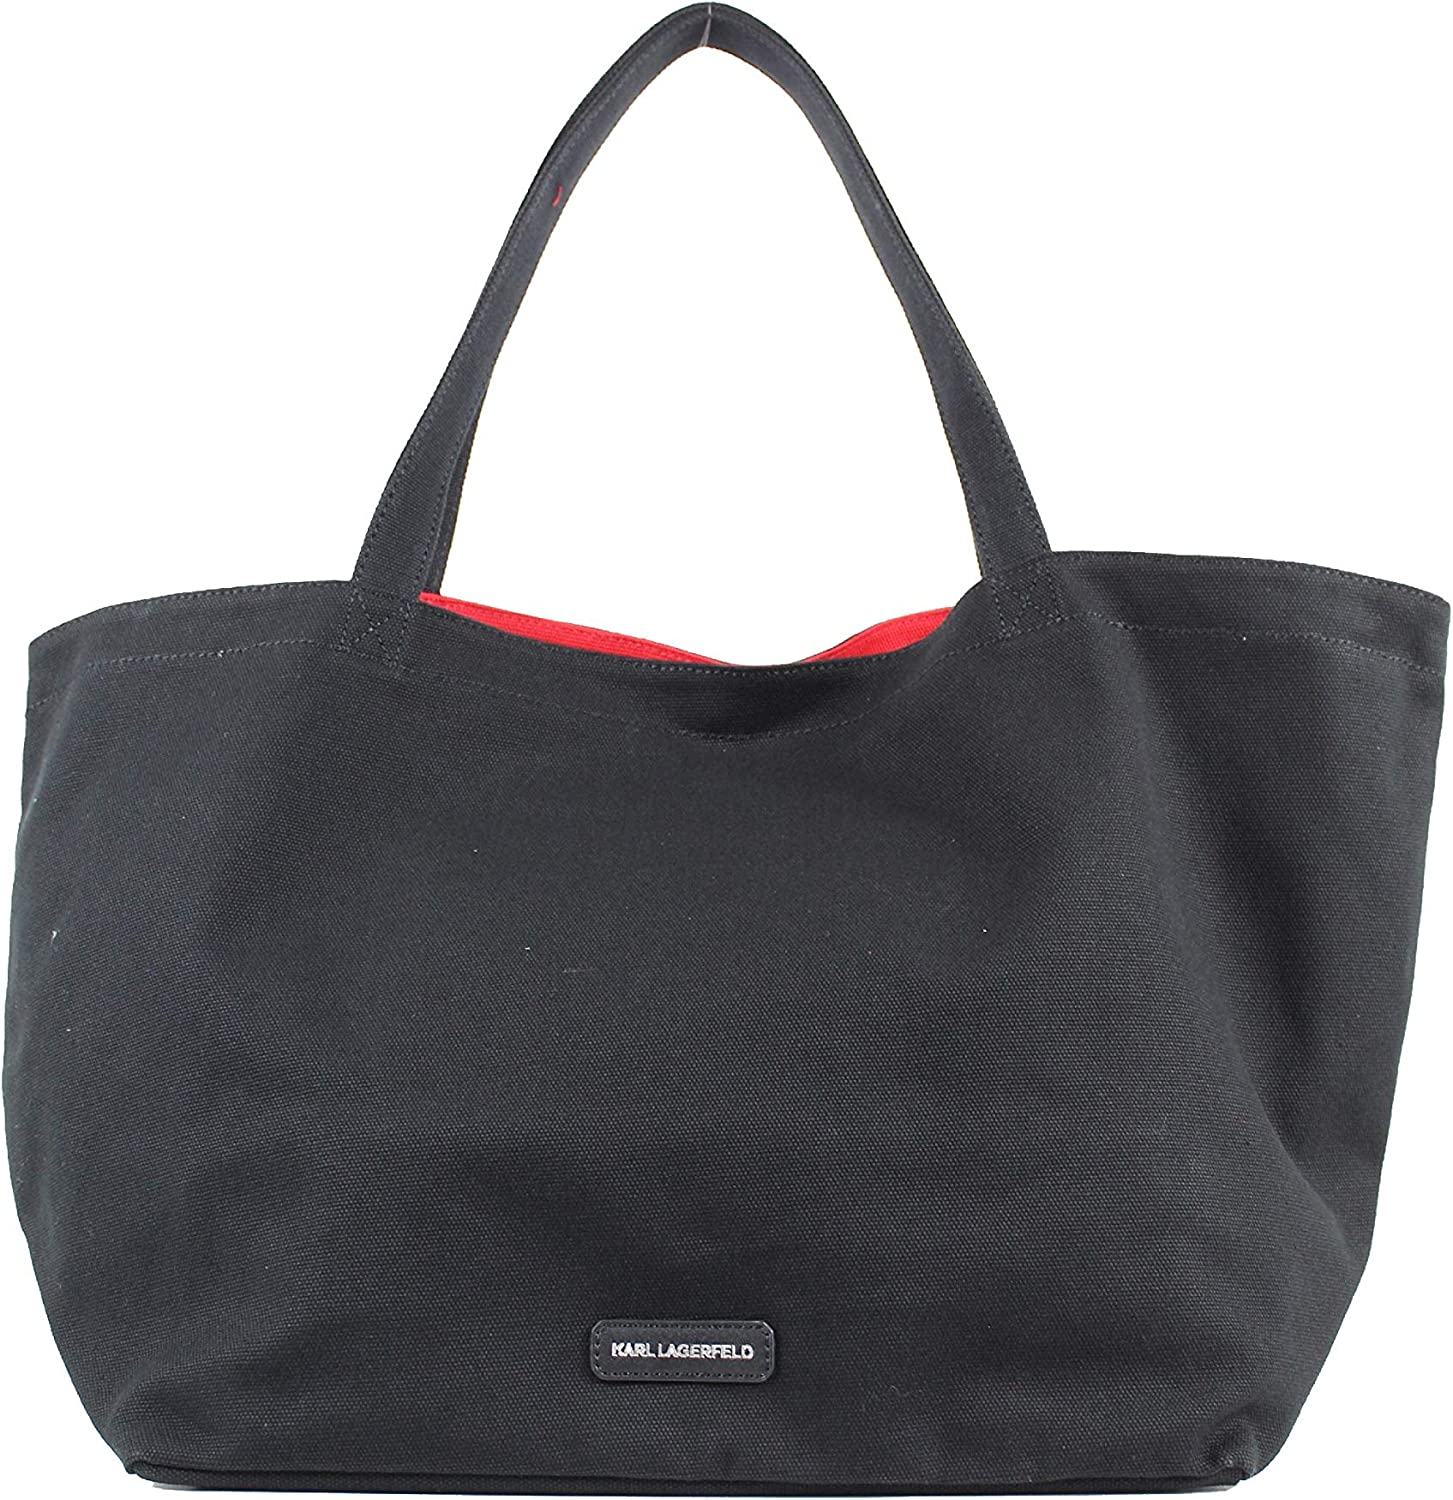 Karl Lagerfeld Bolso Tote Karl Rue St Guillaume Tote 201W3138 Color Negro.: Amazon.es: Zapatos y complementos